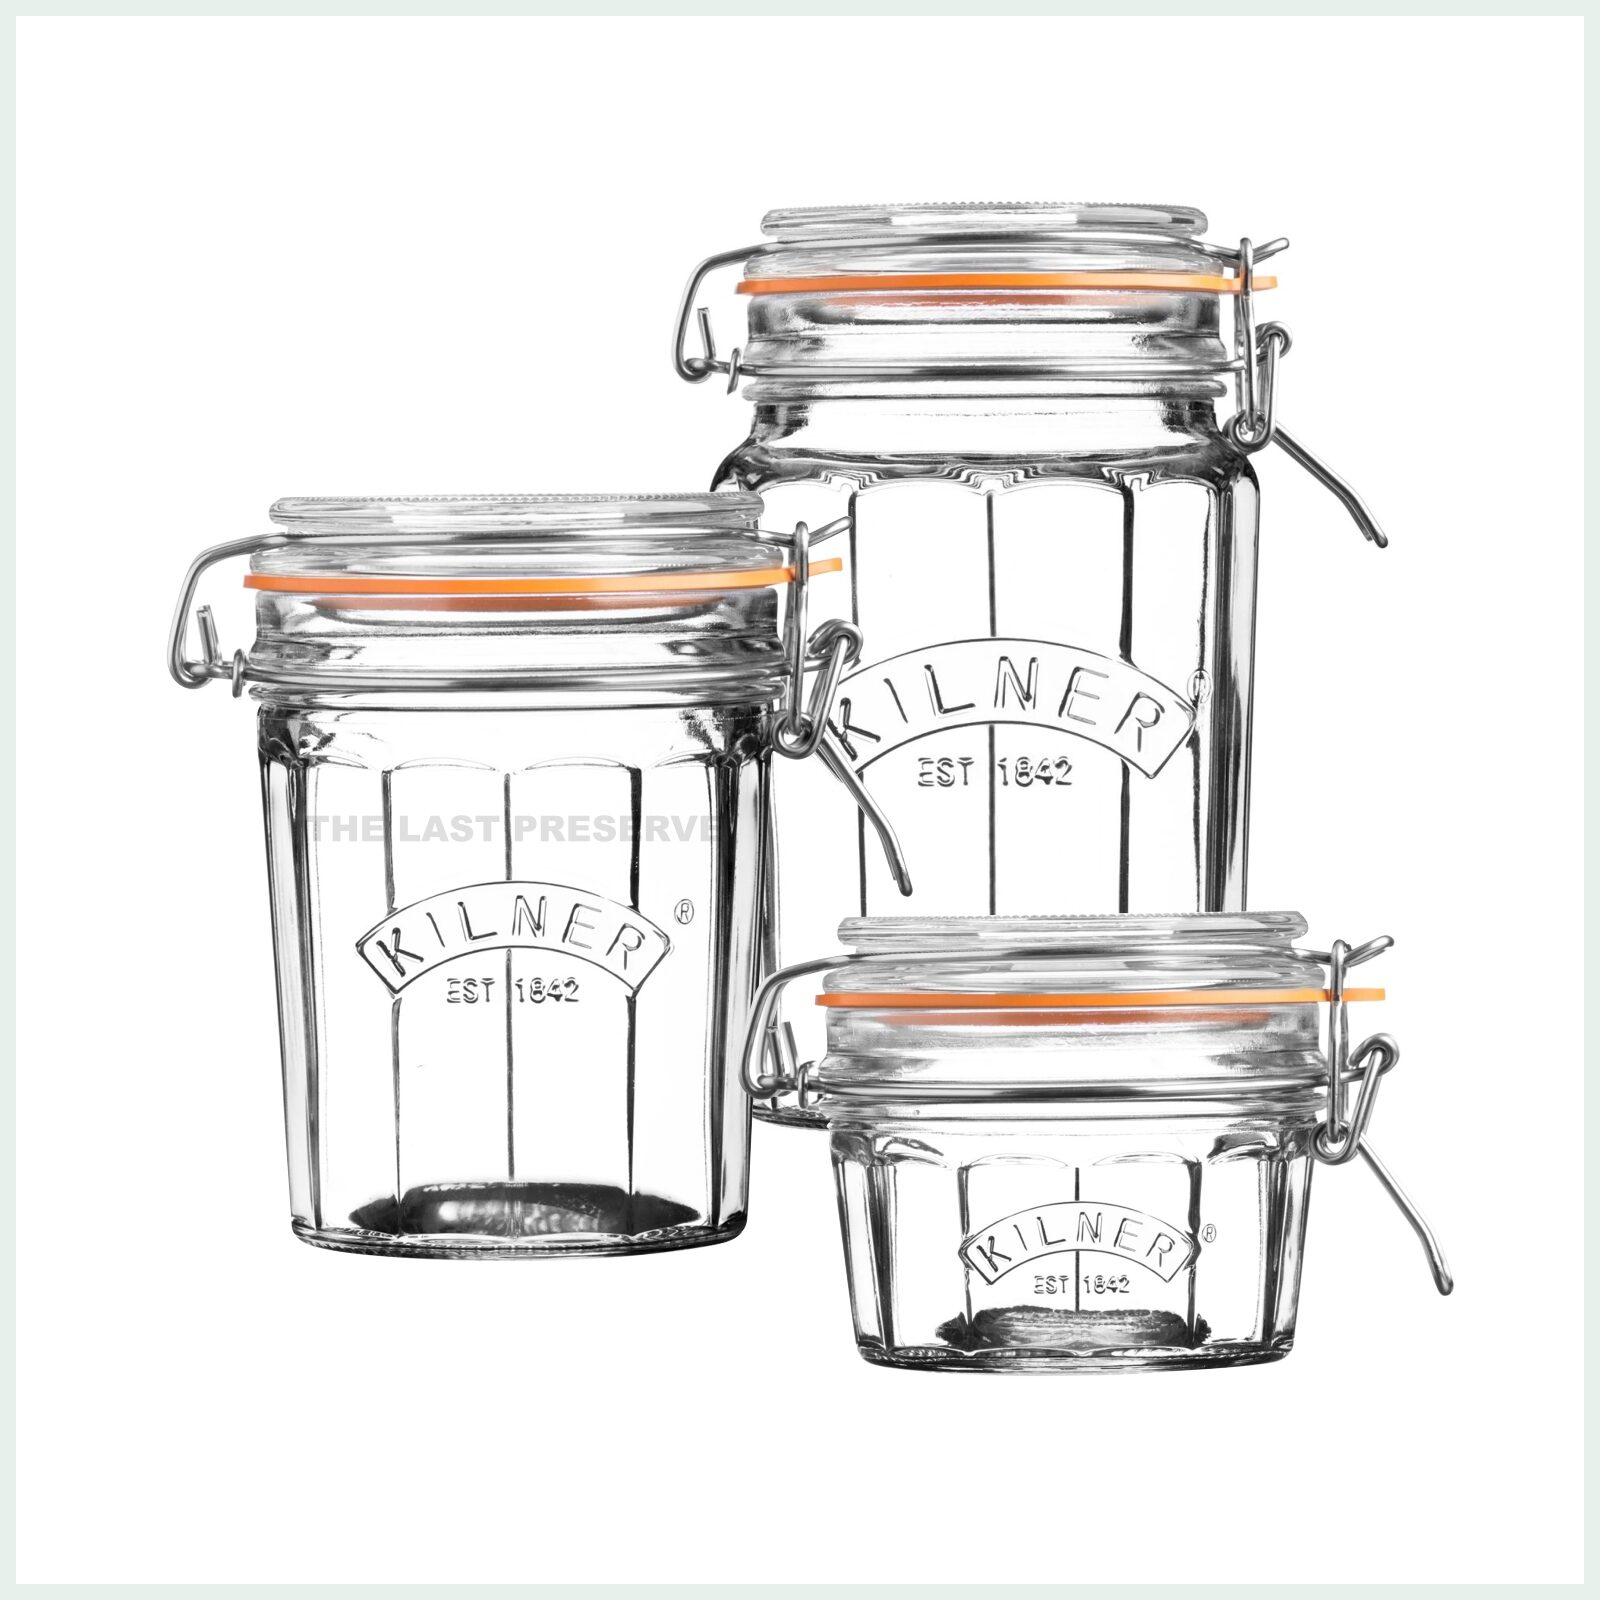 Kilner faceted clip top preserve jars for dry storage, jam making and pickling. Available in 3 sizes.